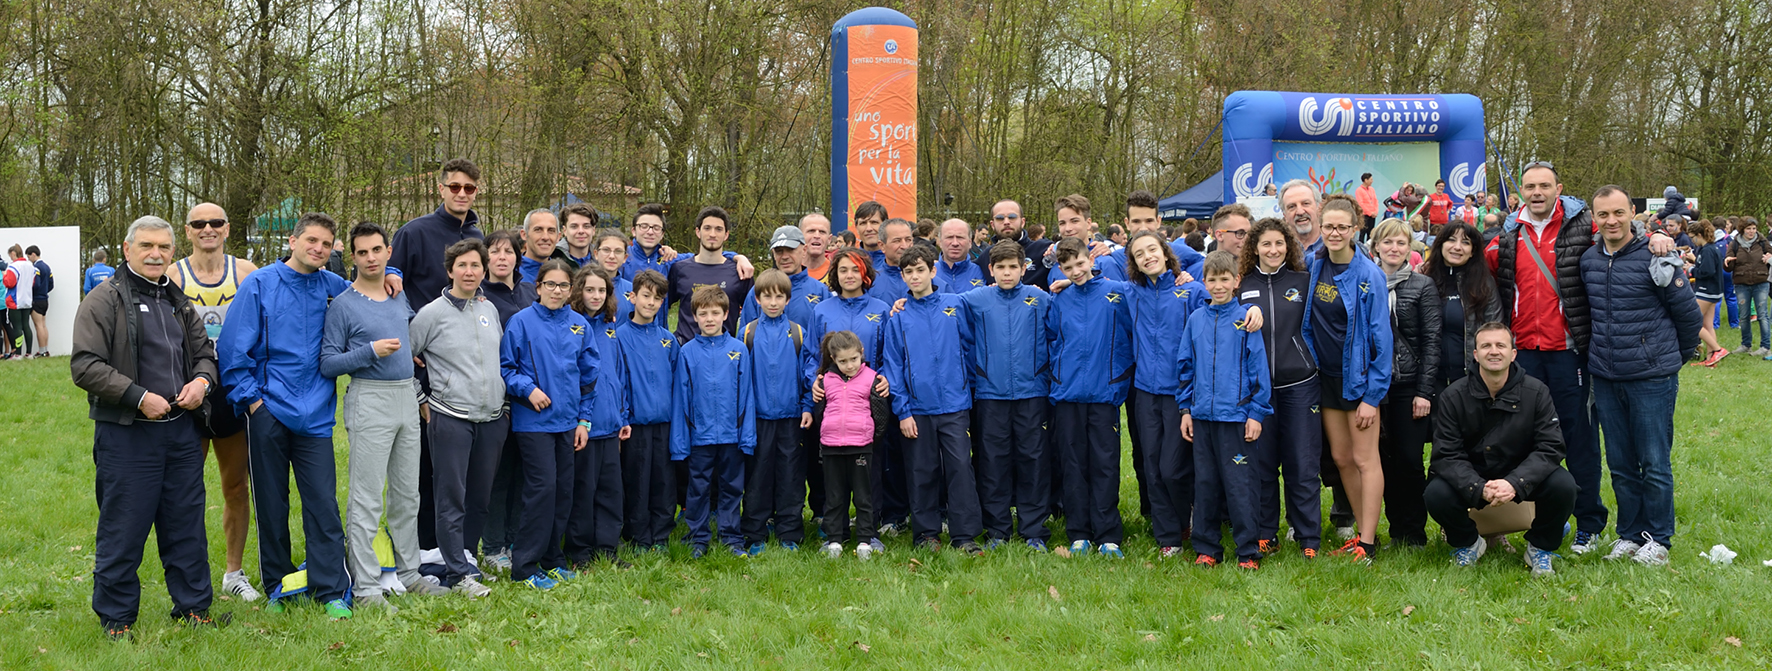 Camp Ital cross CSI [Cesenatico 2-4-16]